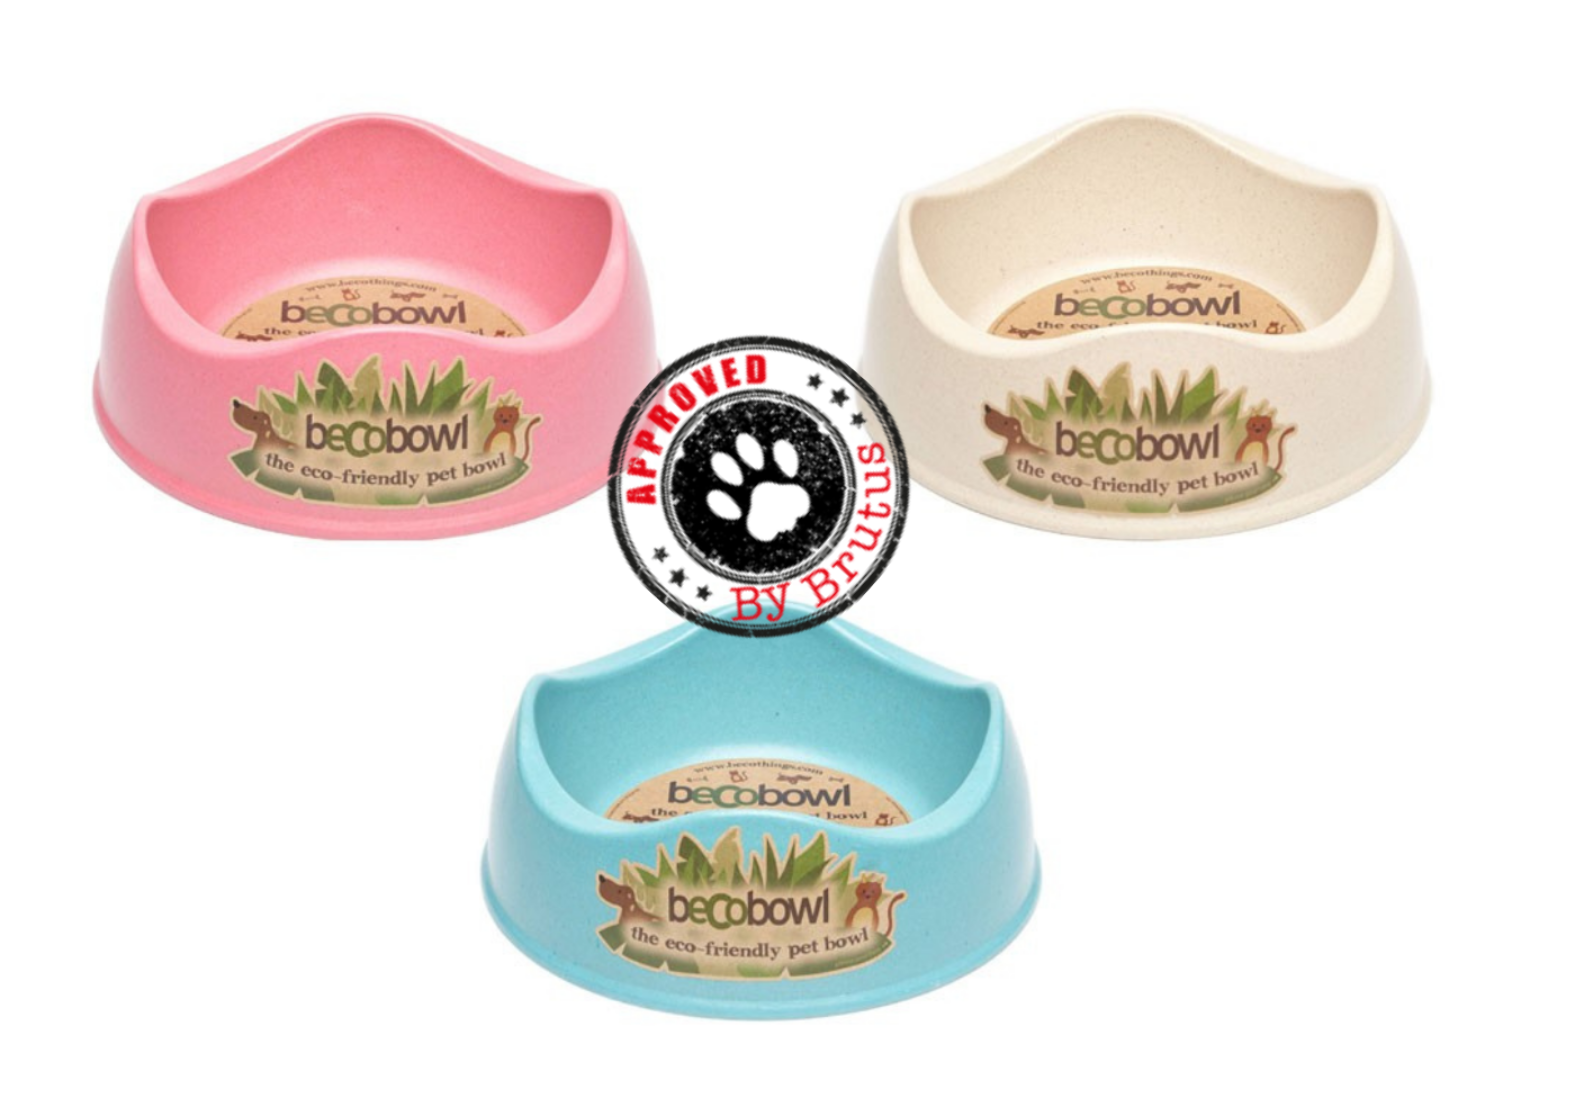 Eco friendly dog and puppy bowls for food and water, including collapsible travel bowls